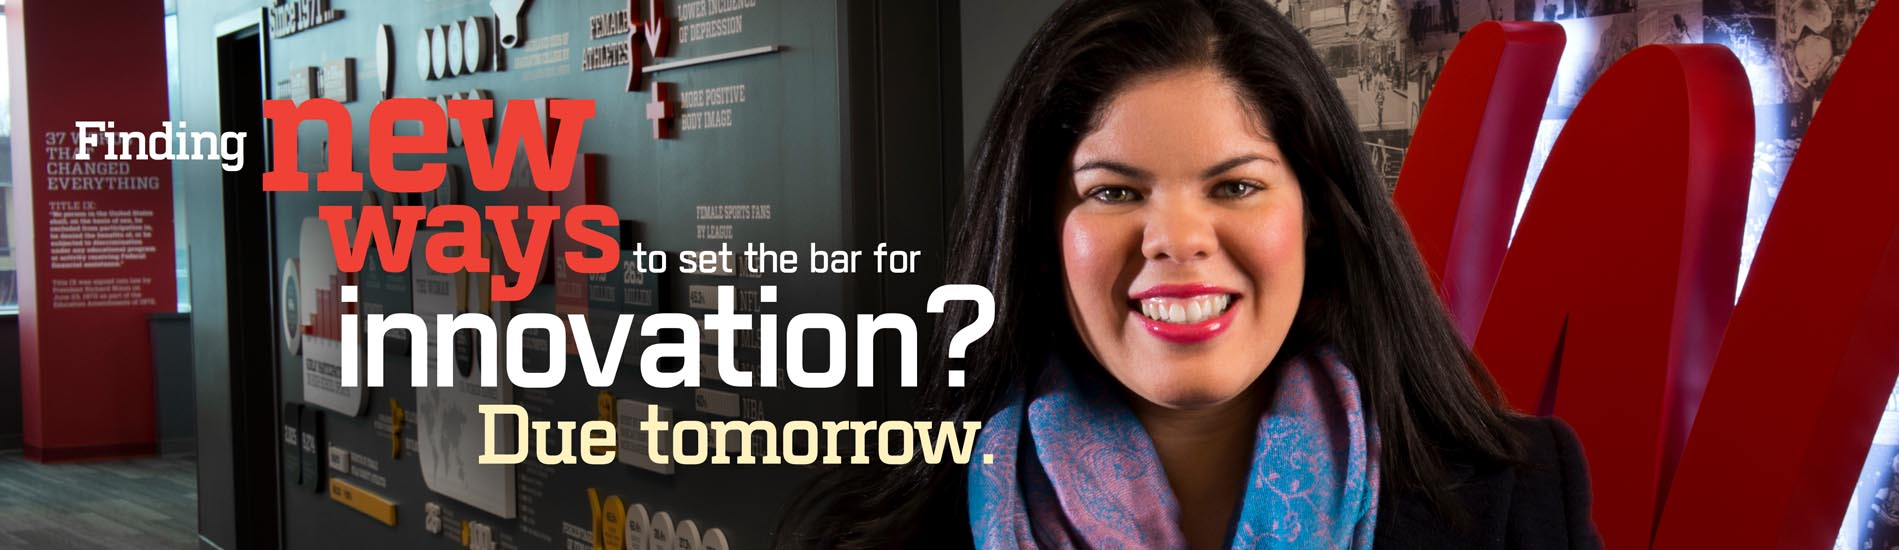 Finding new ways to set the bar innovation? Due tomorrow.